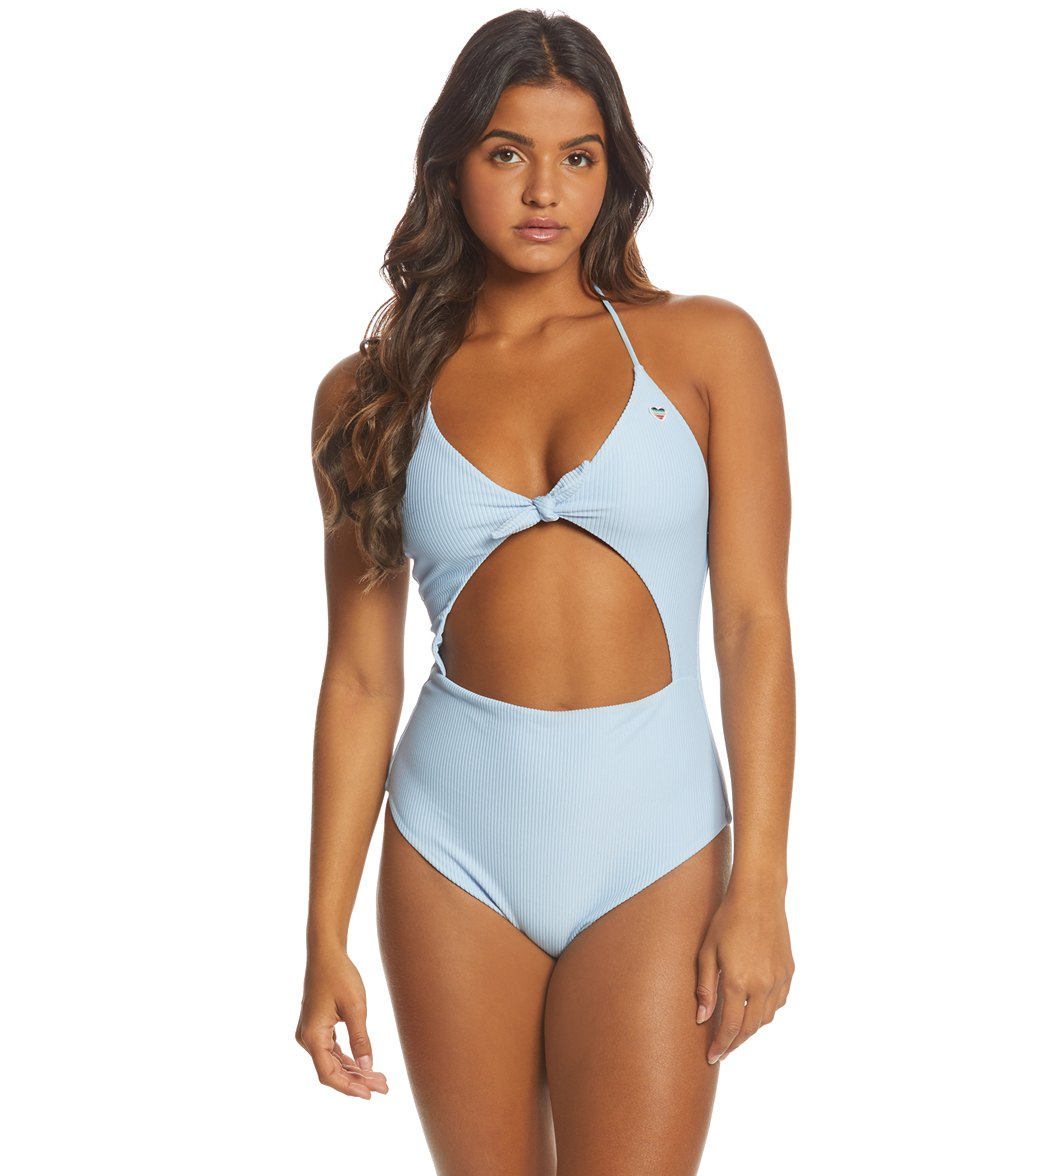 b7eed51c133 Spiritual Gangster Go With The Flow Halter One Piece Swimsuit at  SwimOutlet.com - Free Shipping